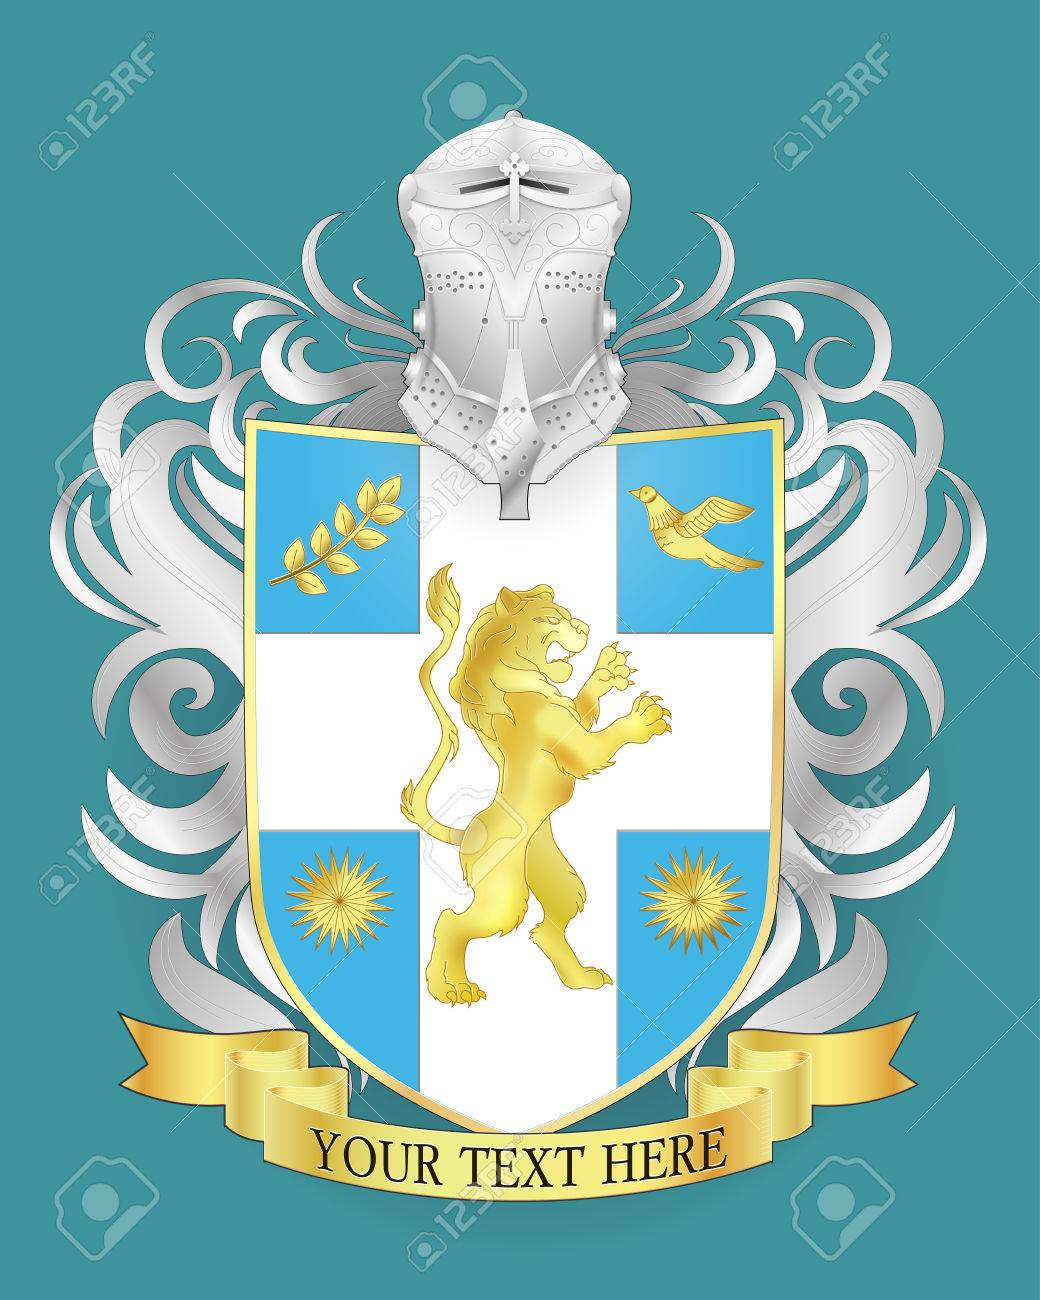 vector heraldic royal crests coat of arms heraldry shield template